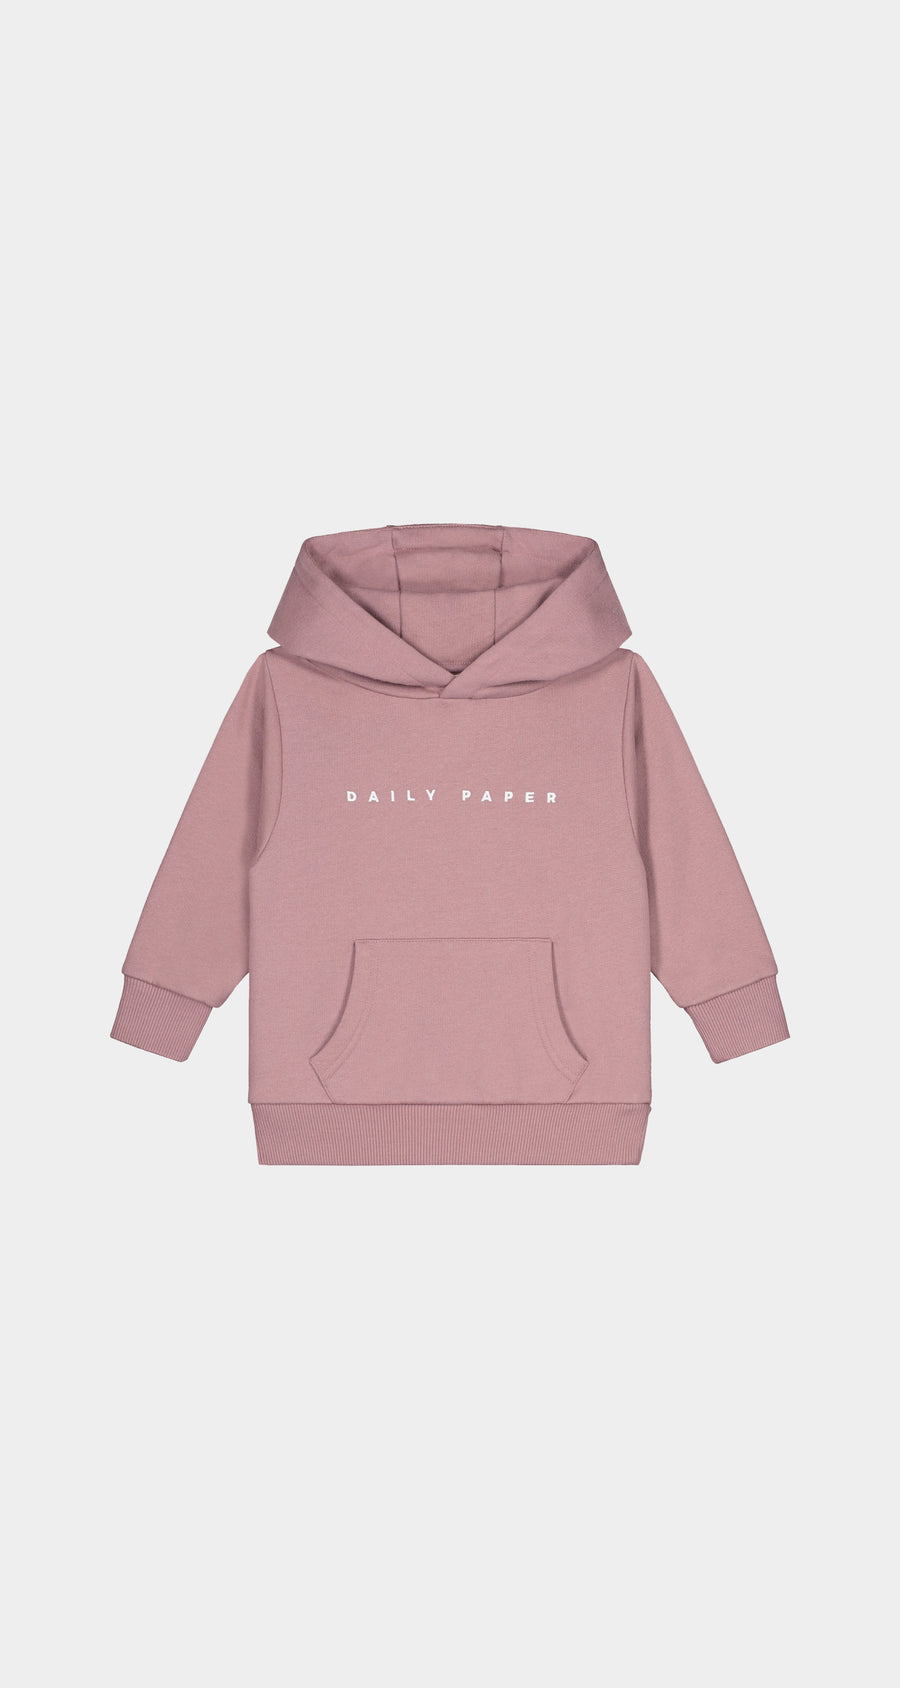 Daily Paper - Mauve Pink Kids Alias Hoody - Front